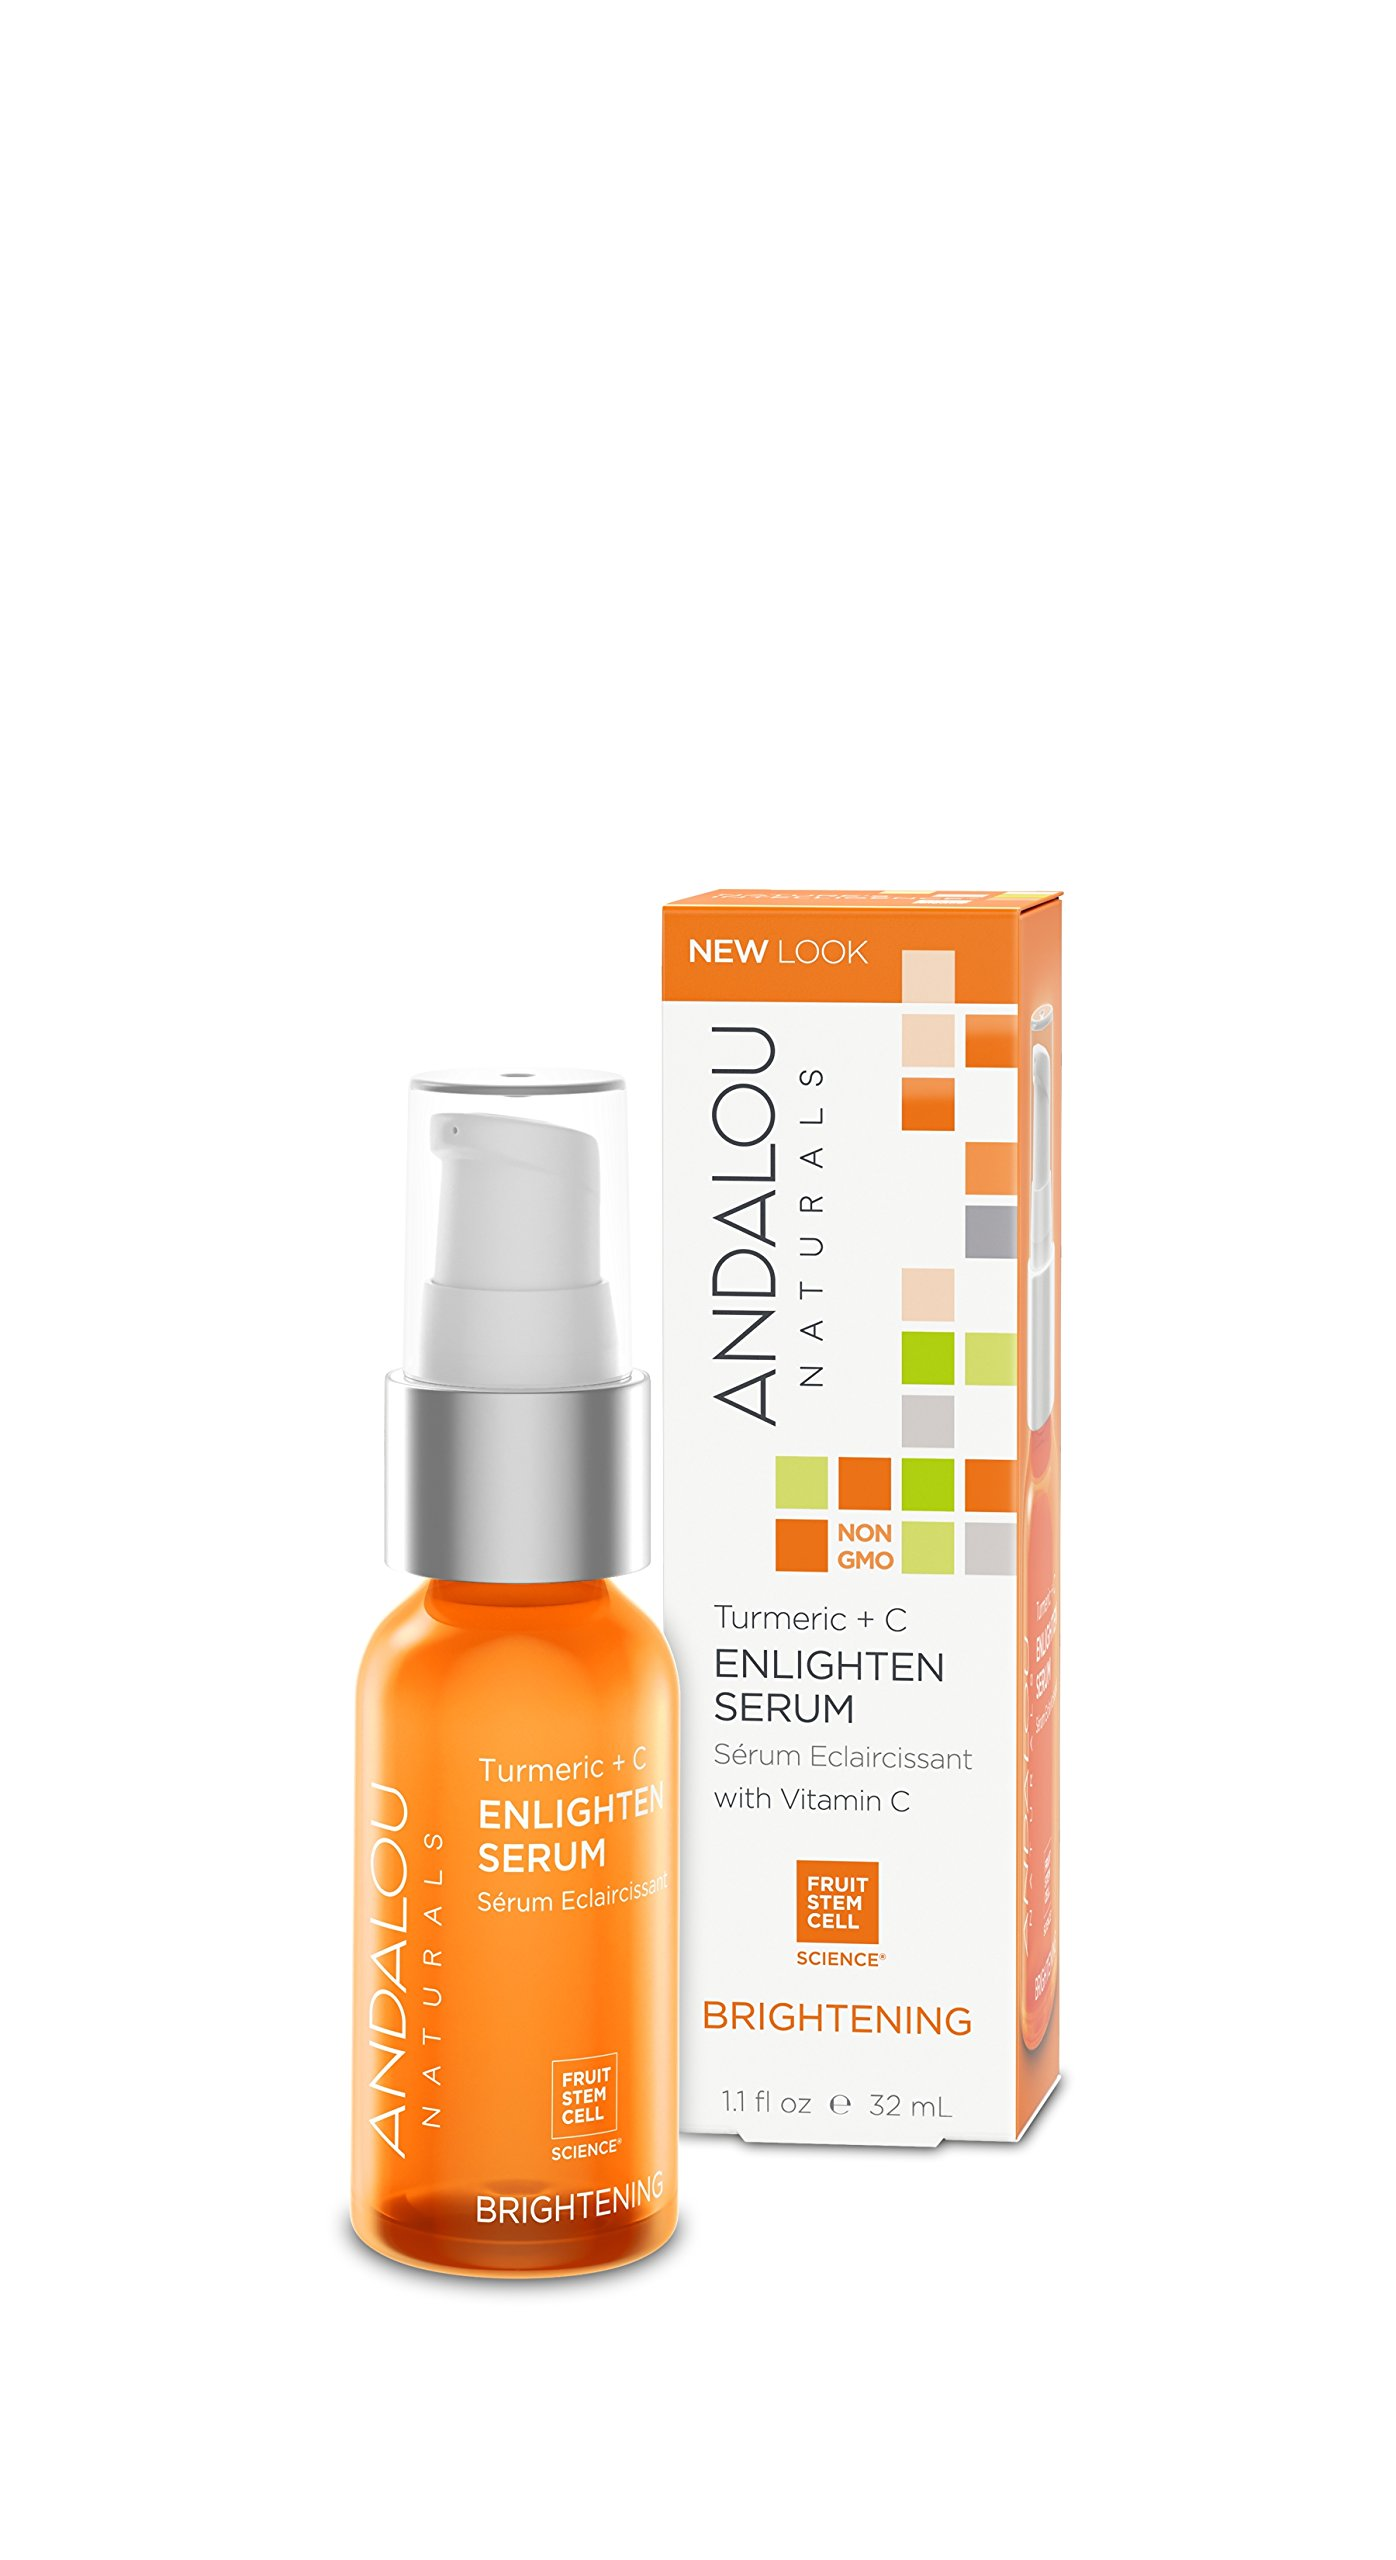 Andalou Naturals Turmeric + C Enlighten Serum, 1.1 oz, Helps Brighten, Firm, Even Skin Tone With Vitamin C for Healthy Looking Glow